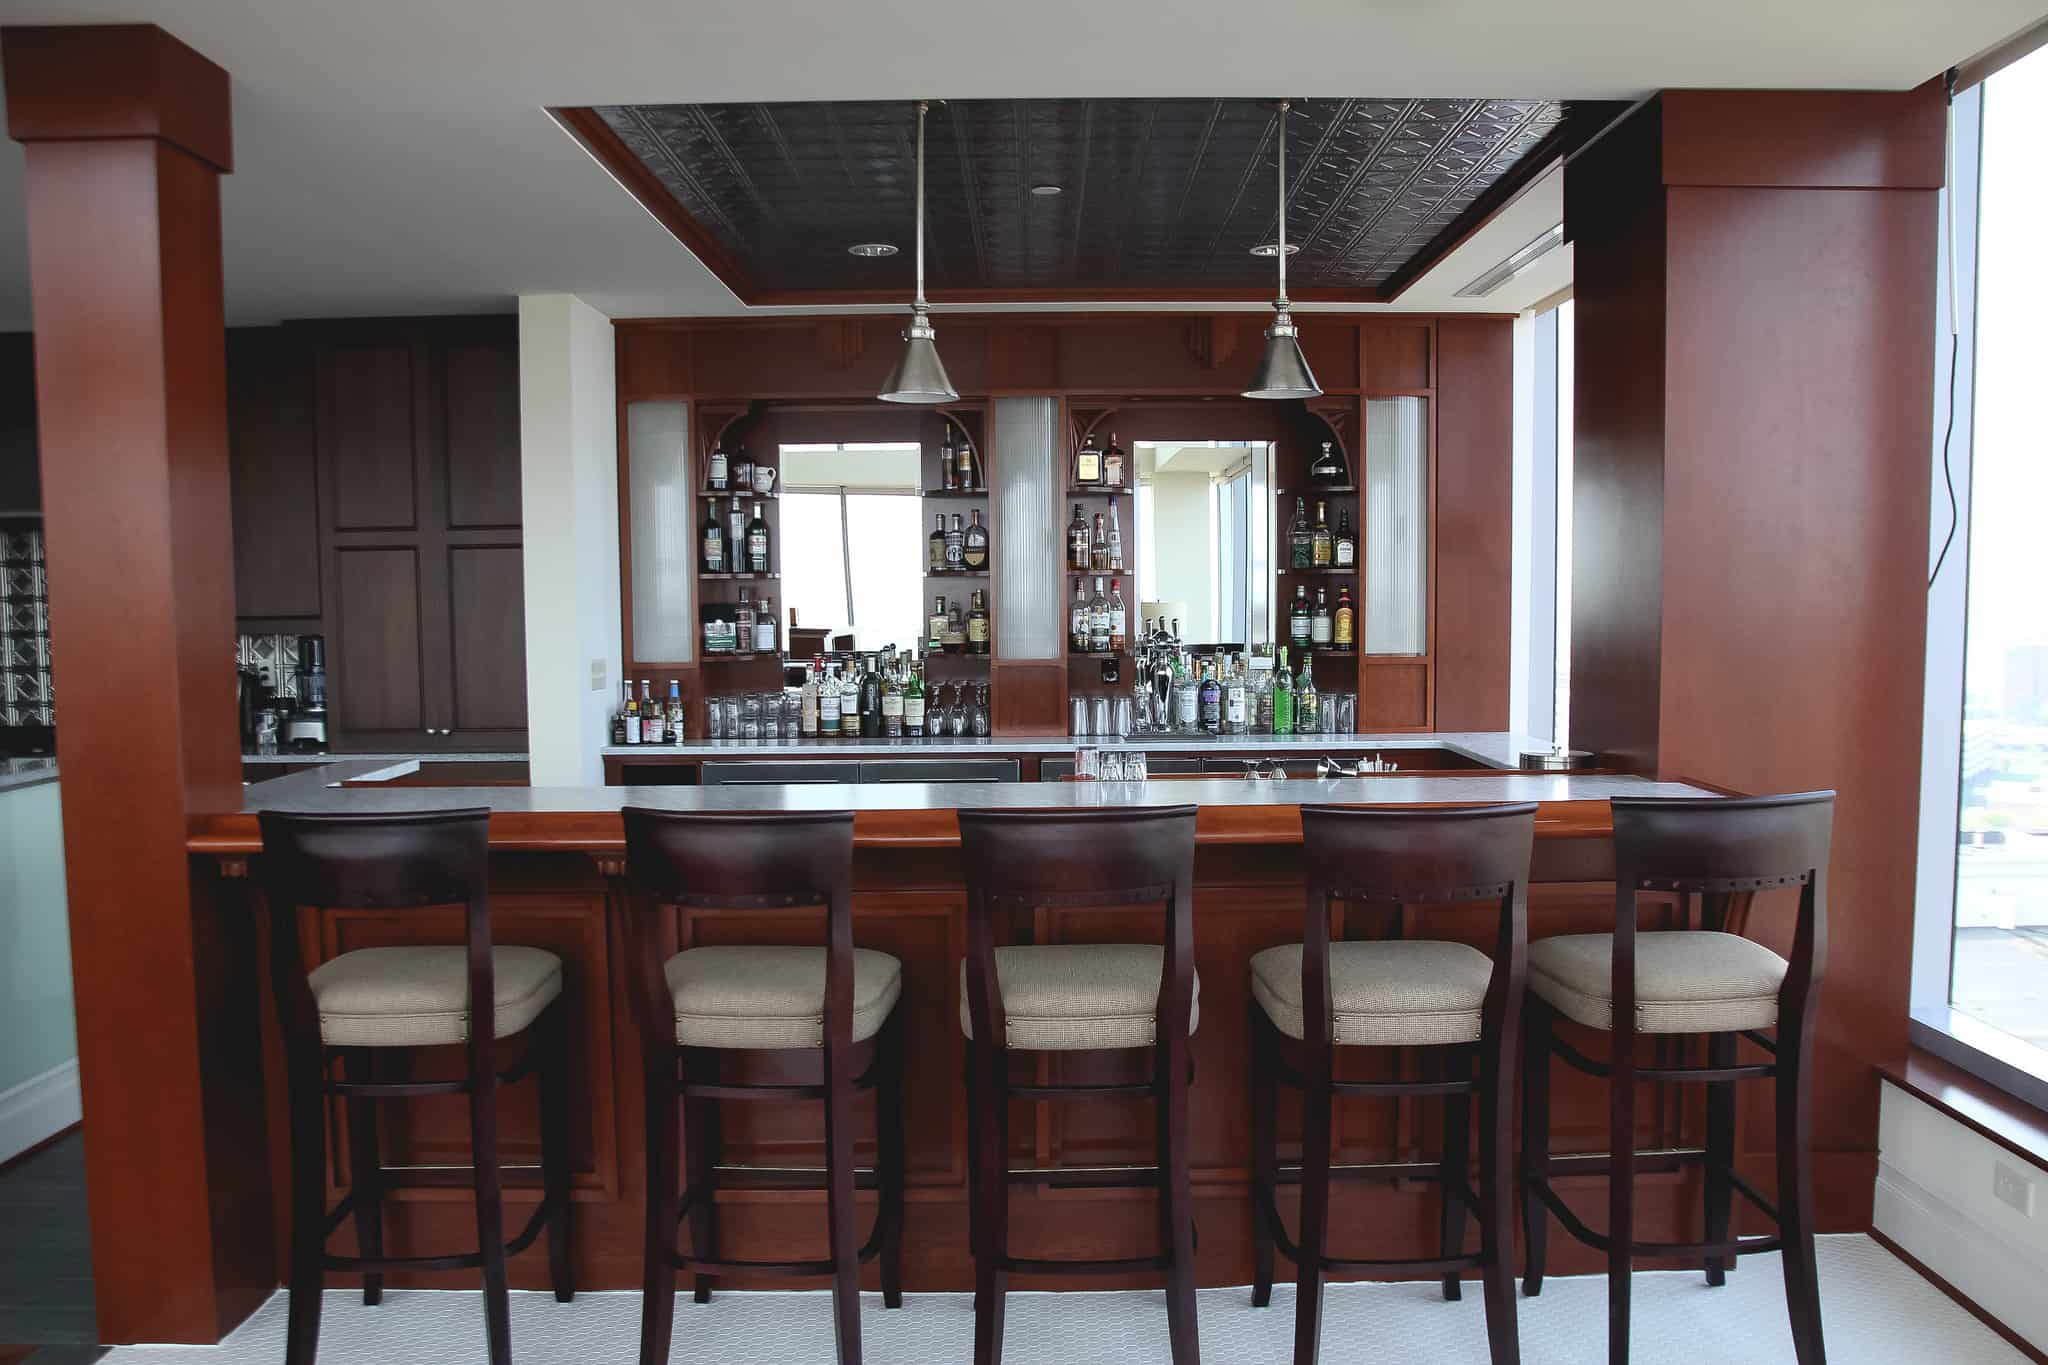 5 Easy Steps For Planning Your Home Bar